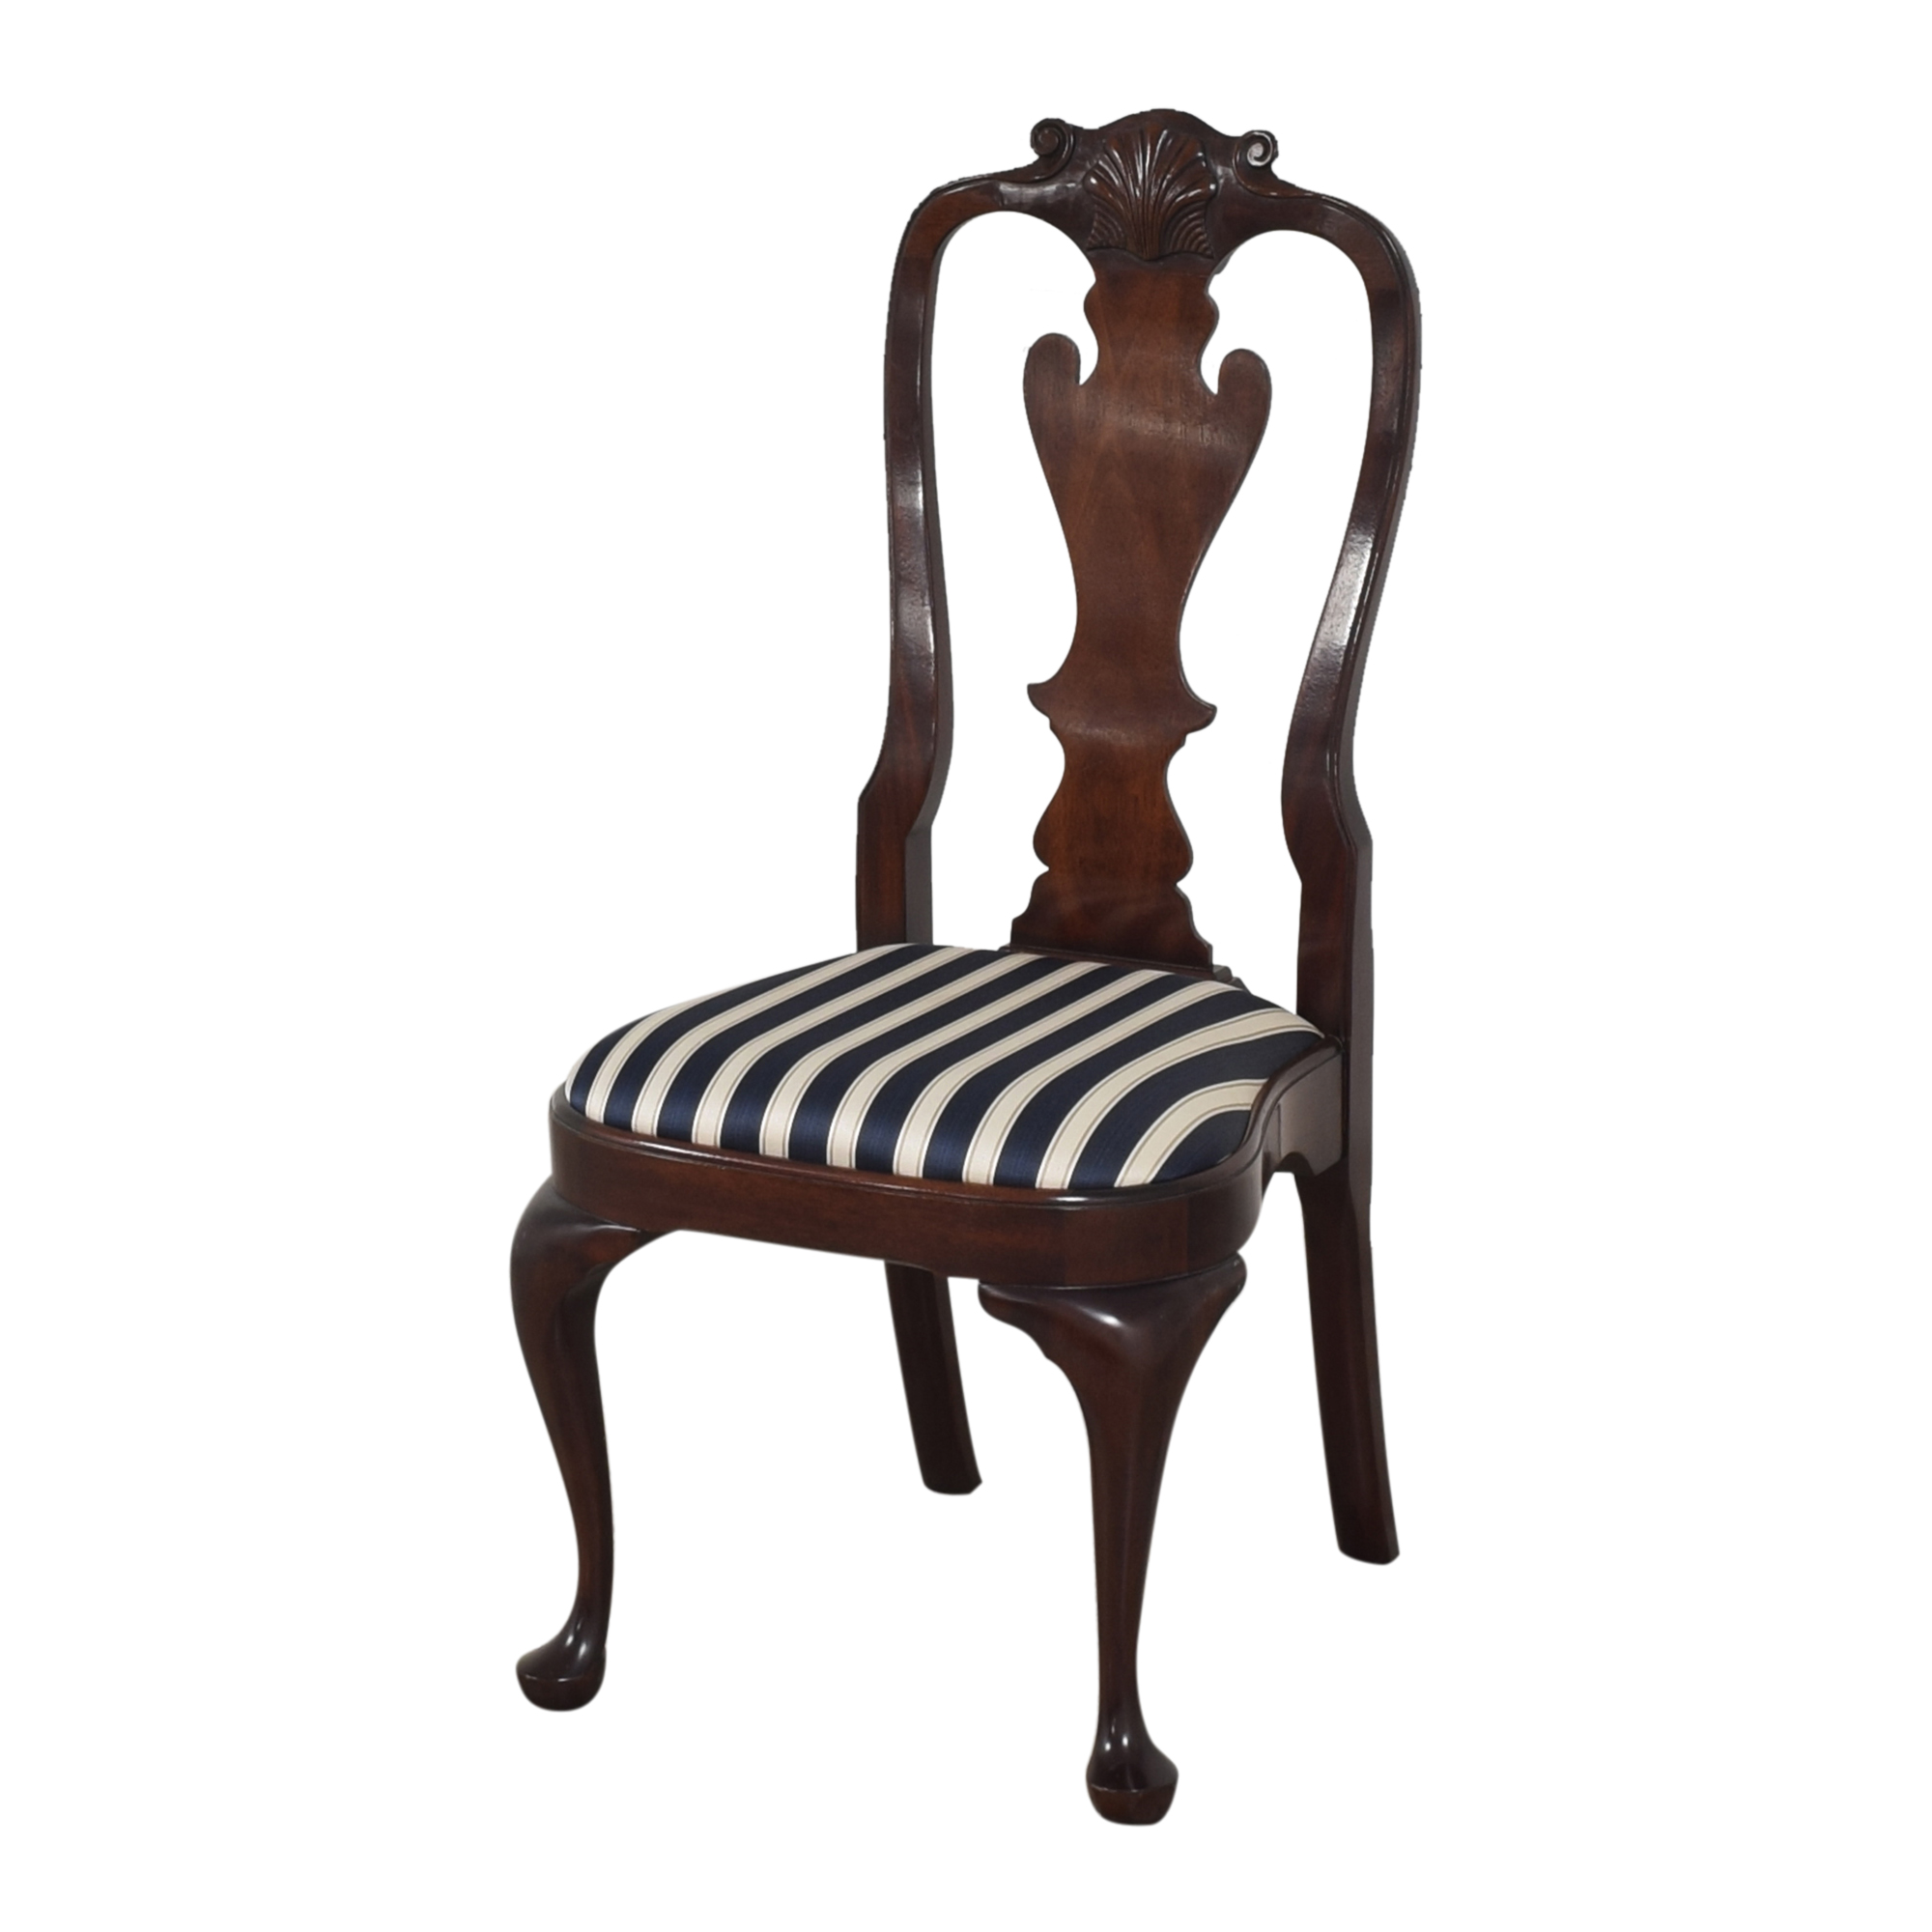 Stickley Furniture Stickley Furniture Queen Anne-Style Dining Chairs coupon